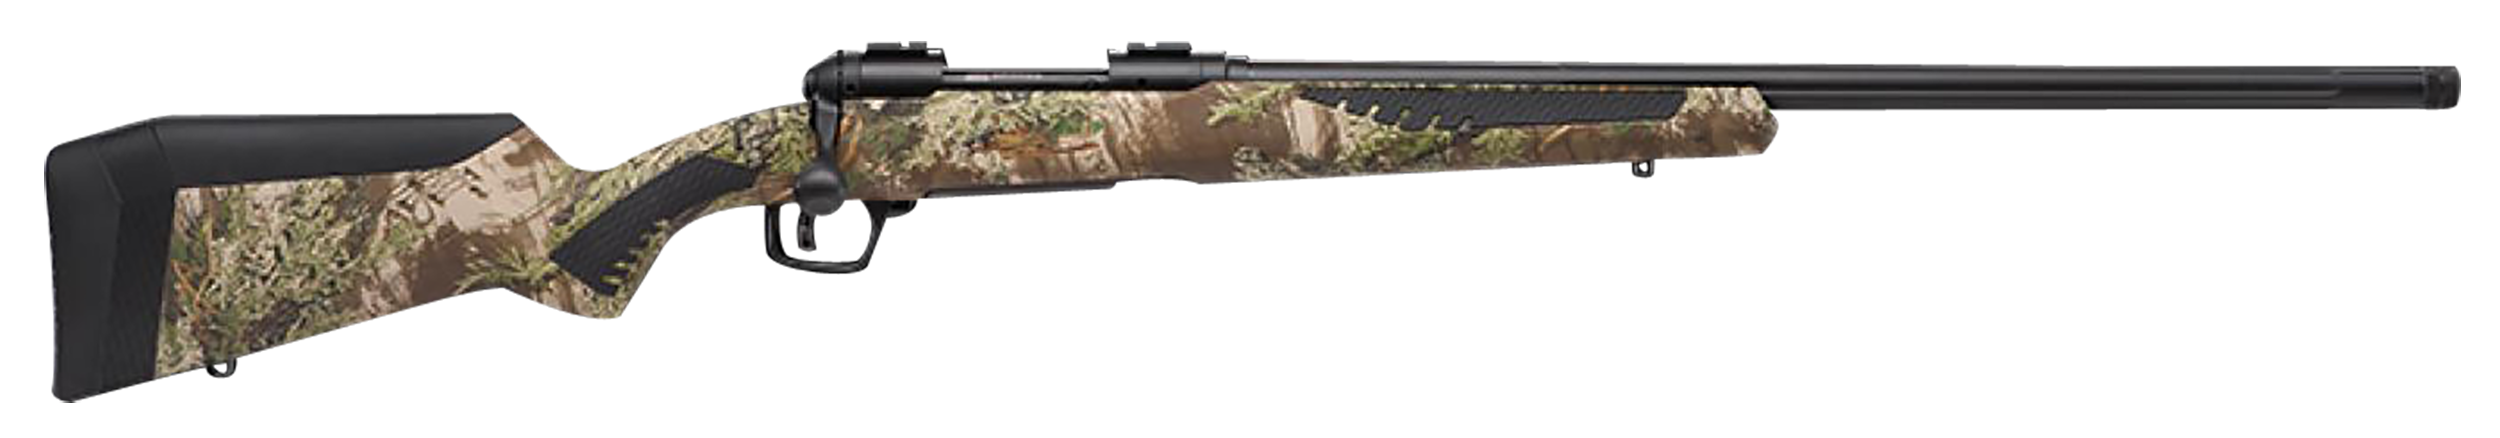 Savage 57001 10/110 Predator Bolt 223 Remington/5.56 NATO 22